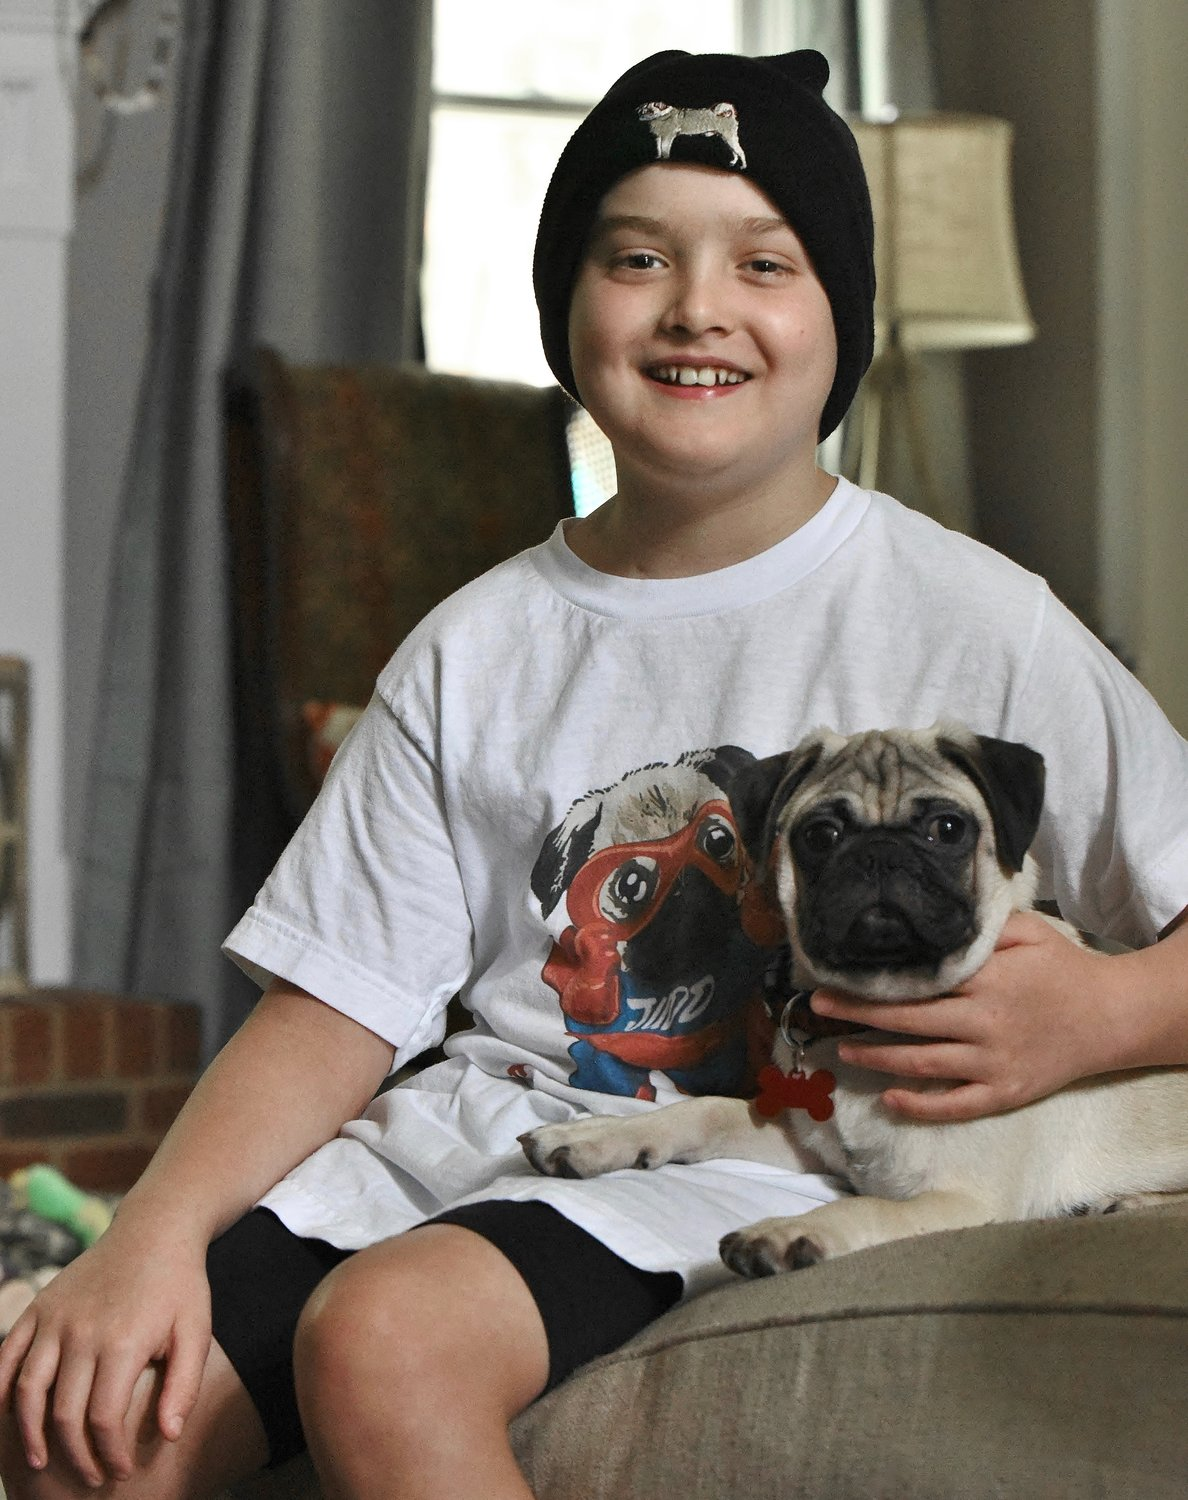 Mission Road Elementary School third-grader Judd Bailey, who is battling stage 2 B-cell lymphoblastic lymphoma, received a pug puppy, Rocco, from Petland Kennesaw last week.